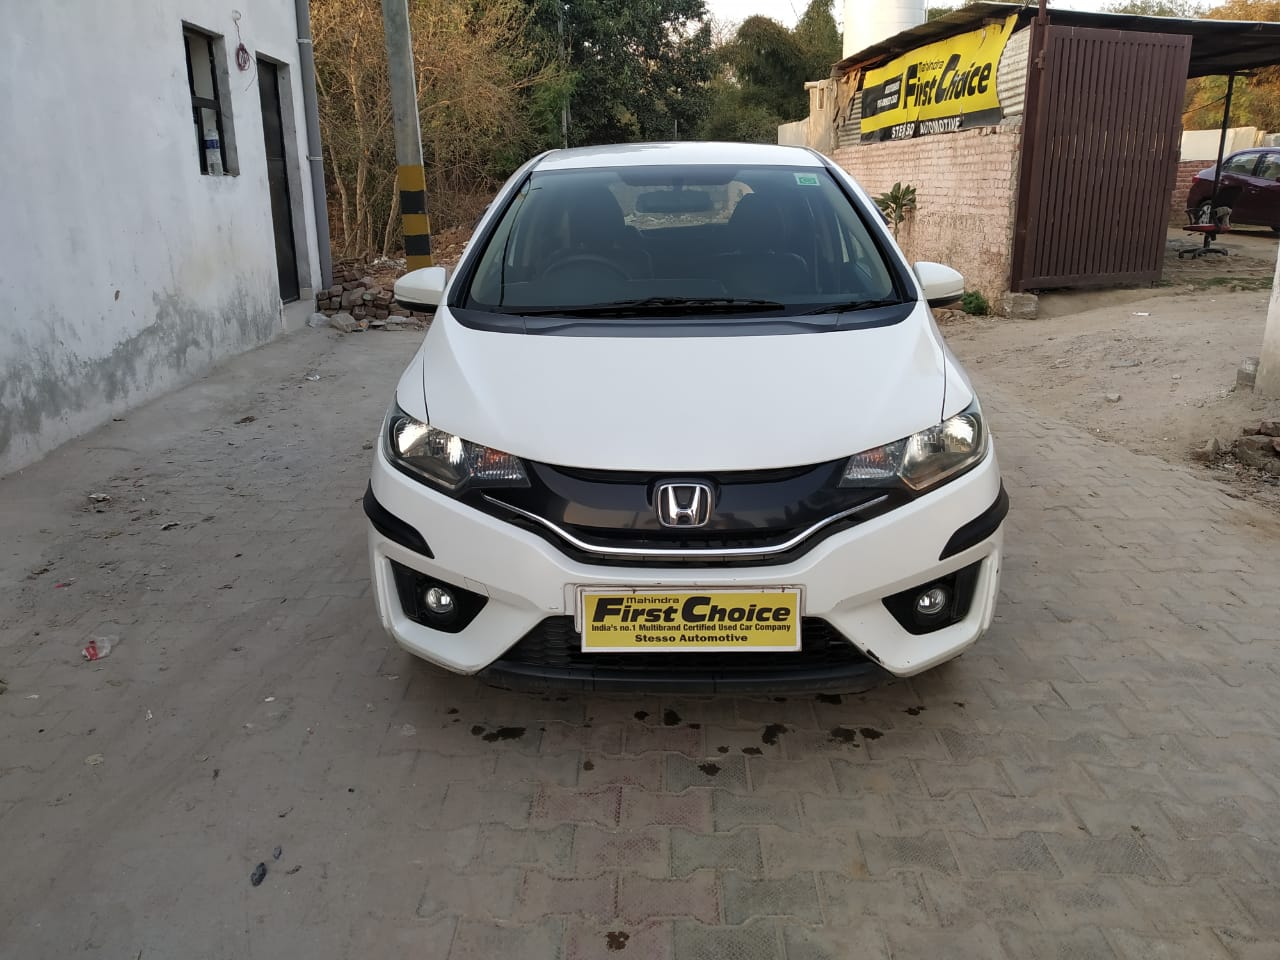 2016 Used Honda Jazz 1.2 SV I VTEC